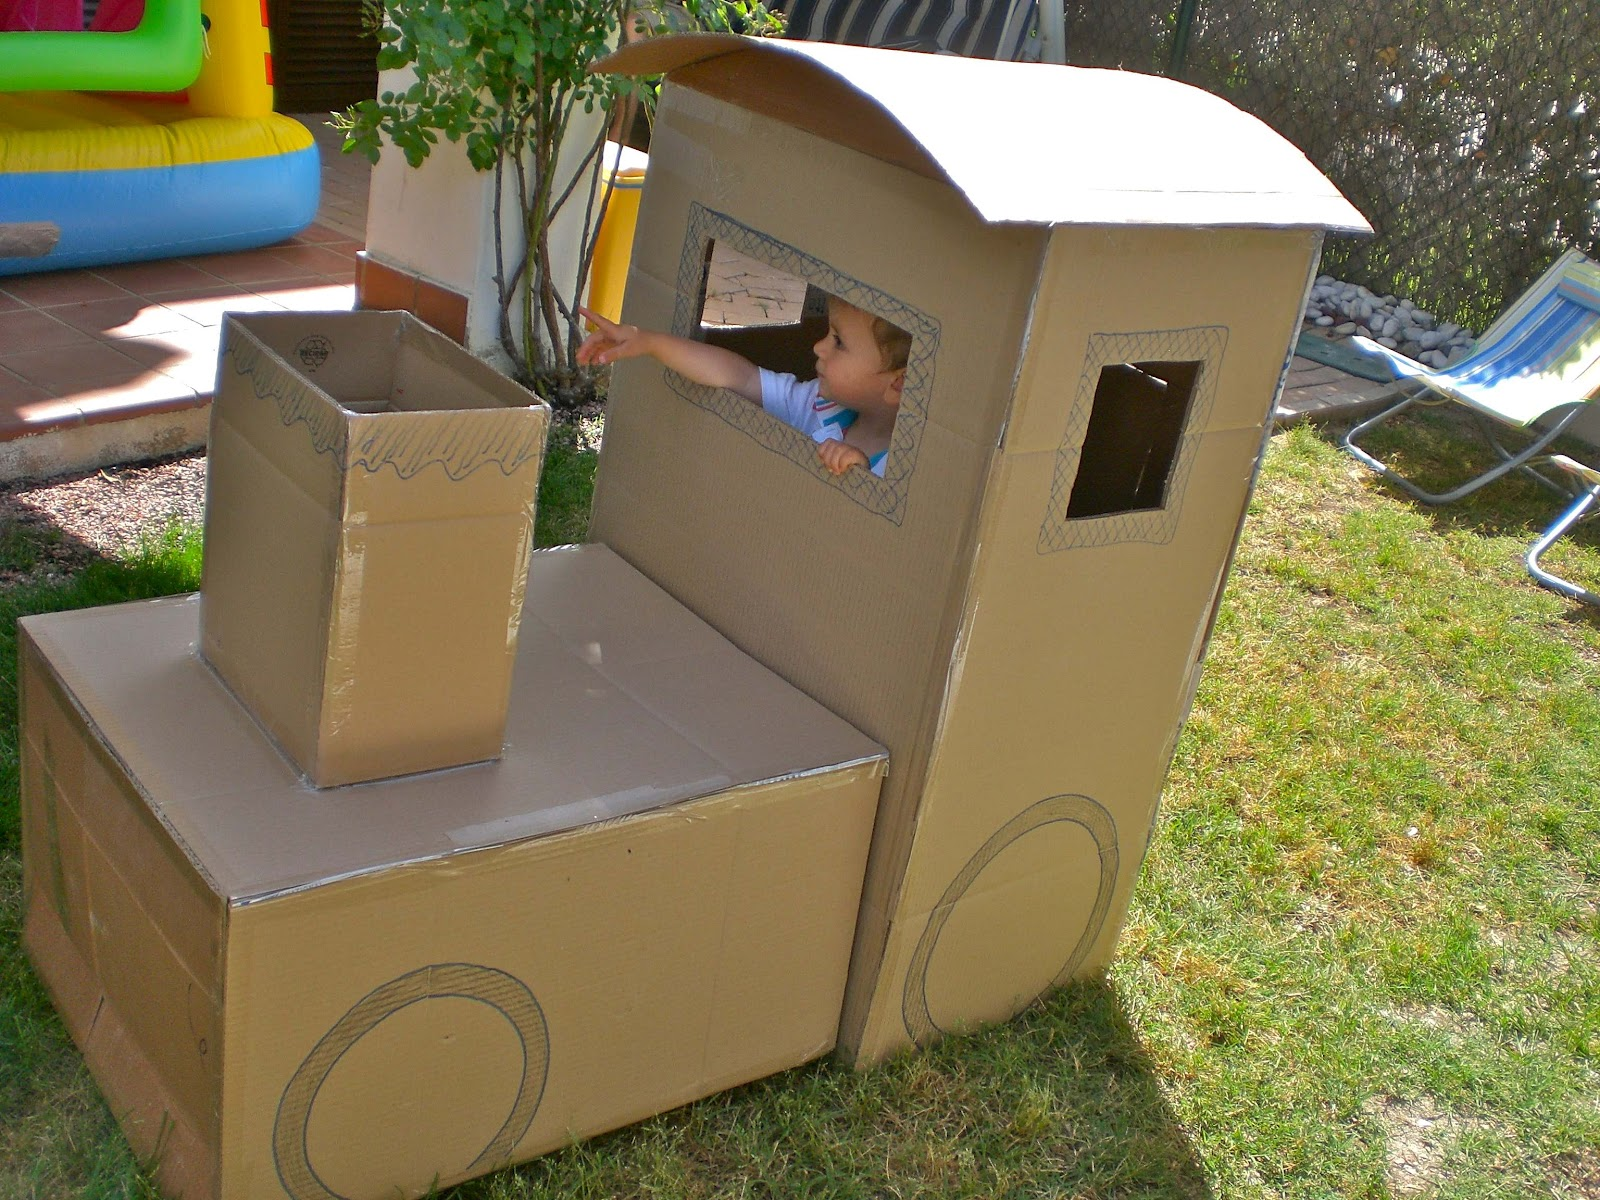 cottoncloud tren de cart n cardboard train. Black Bedroom Furniture Sets. Home Design Ideas